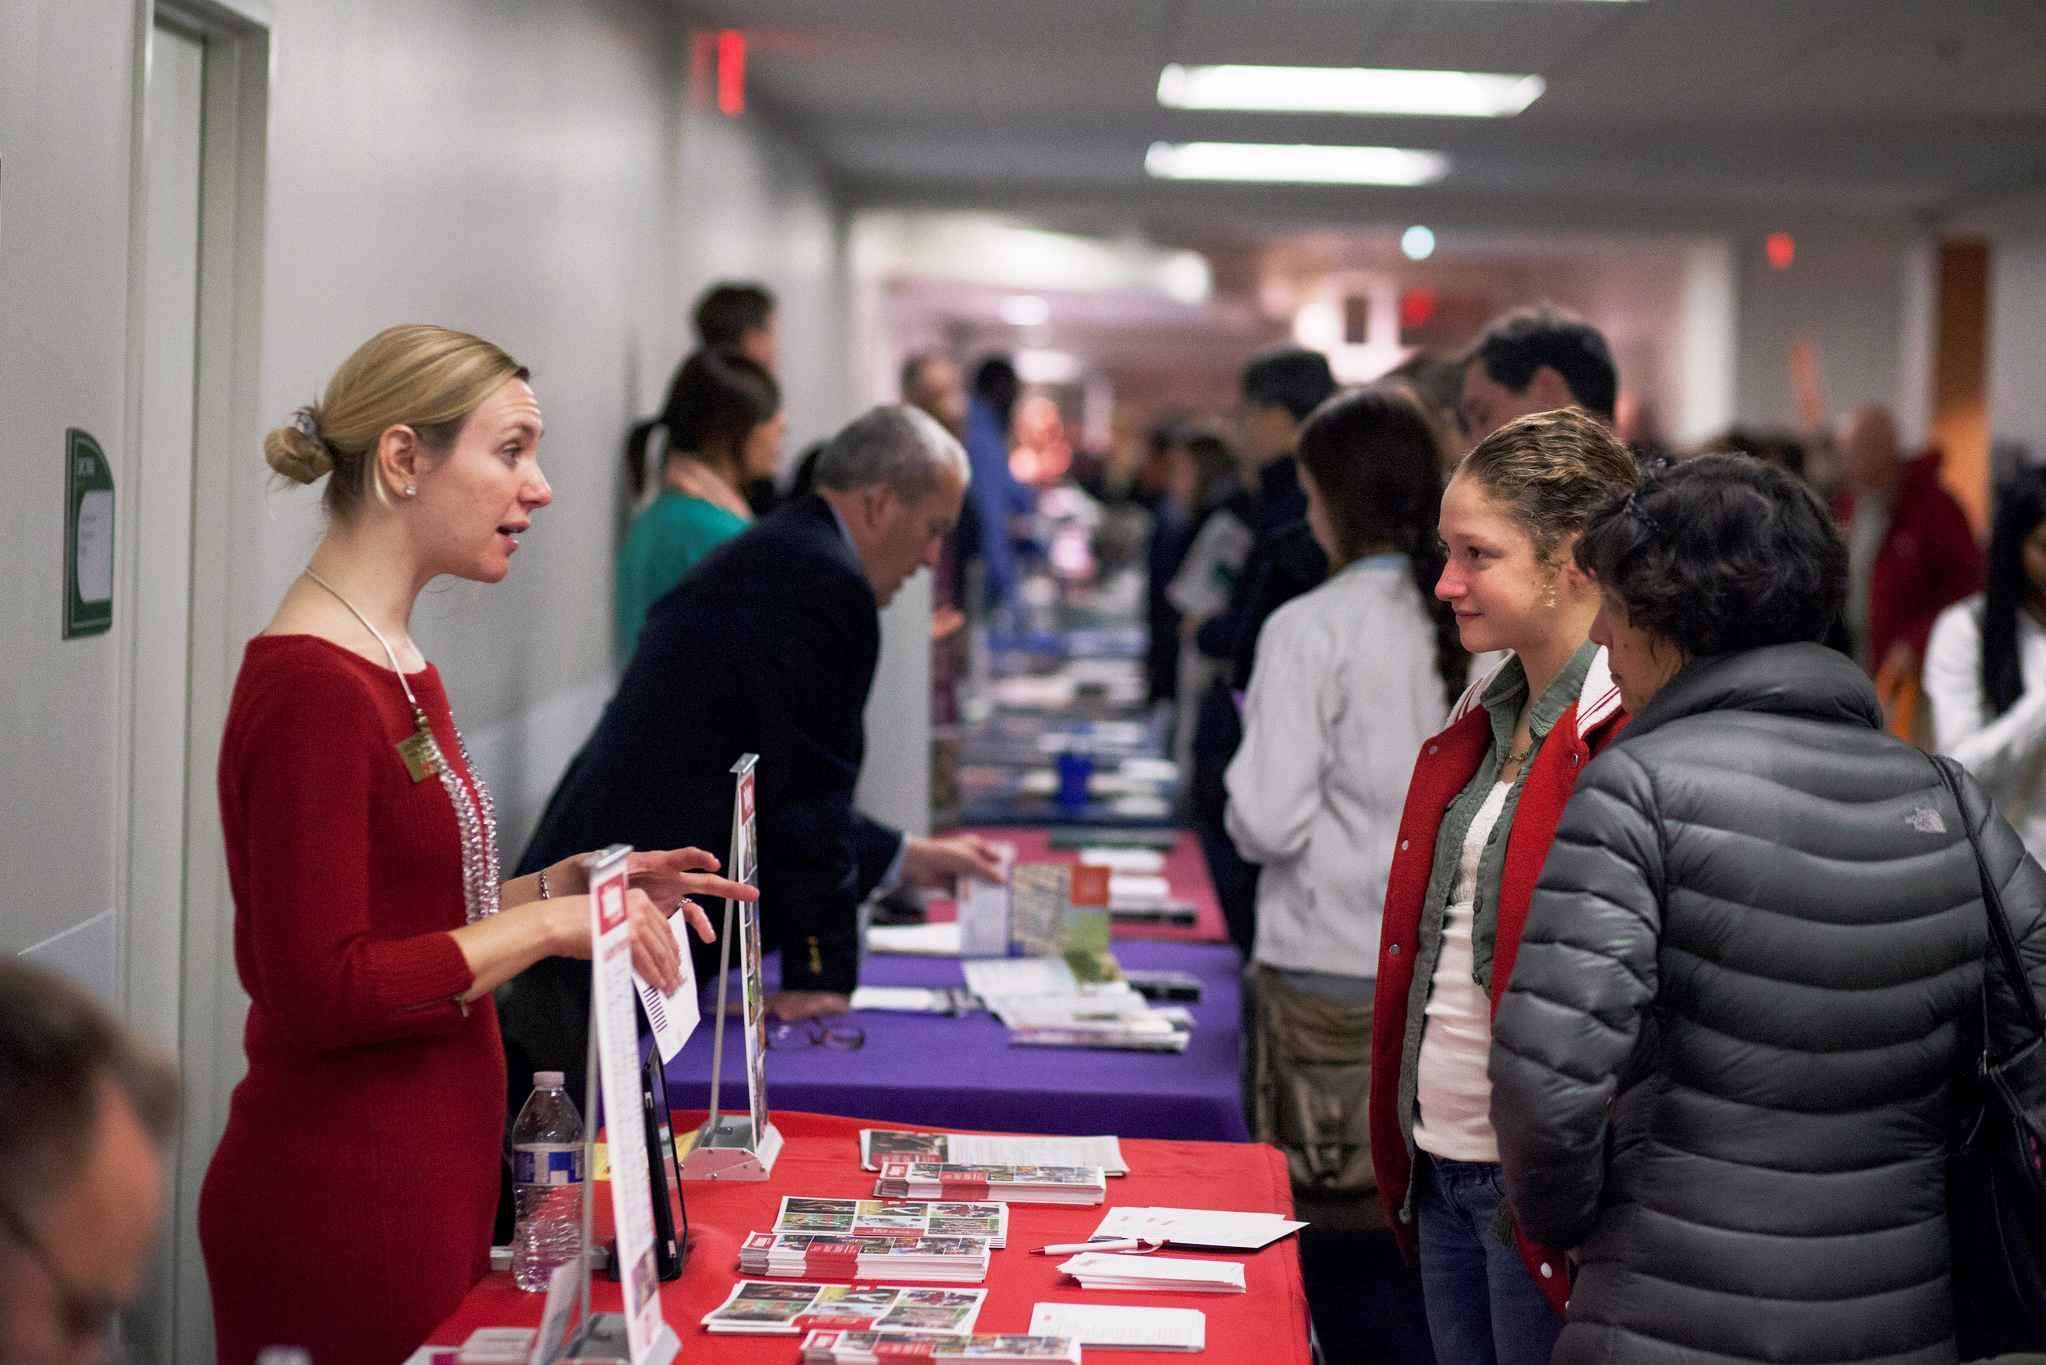 A college fair is useful for collecting information about multiple colleges.